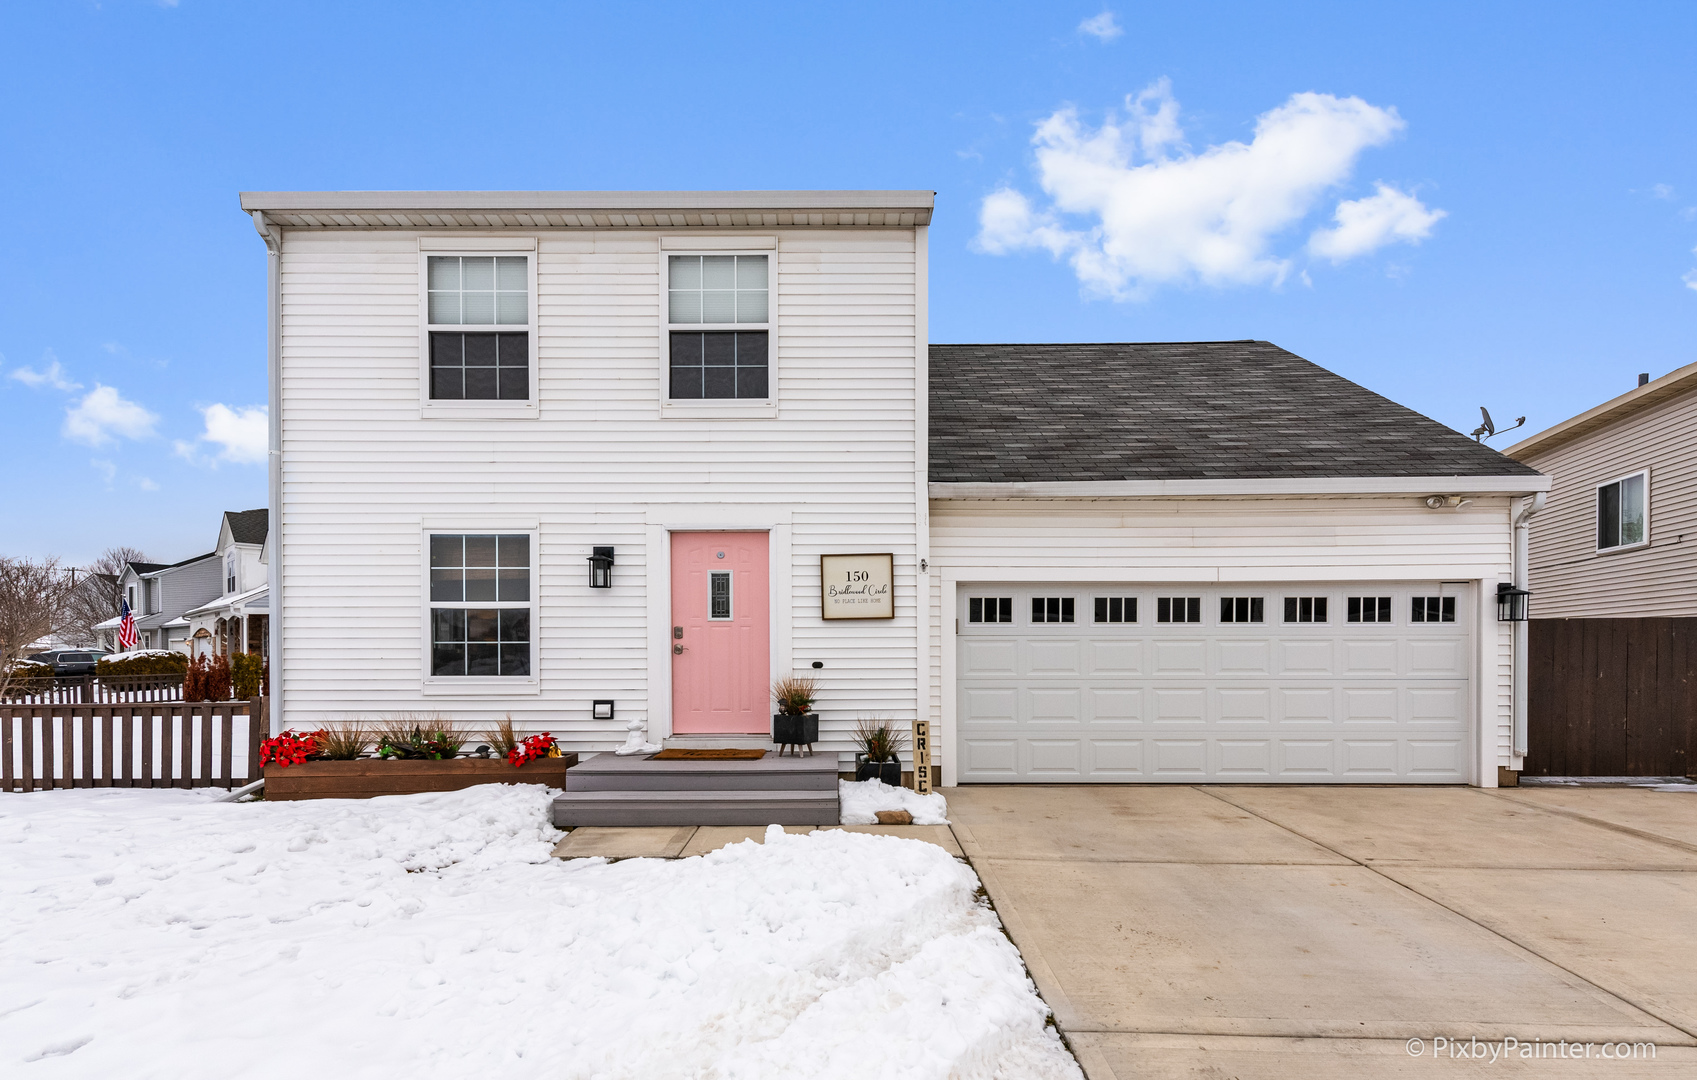 Photo for 150 Bridlewood Circle, Lake In The Hills, IL 60156 (MLS # 10625833)